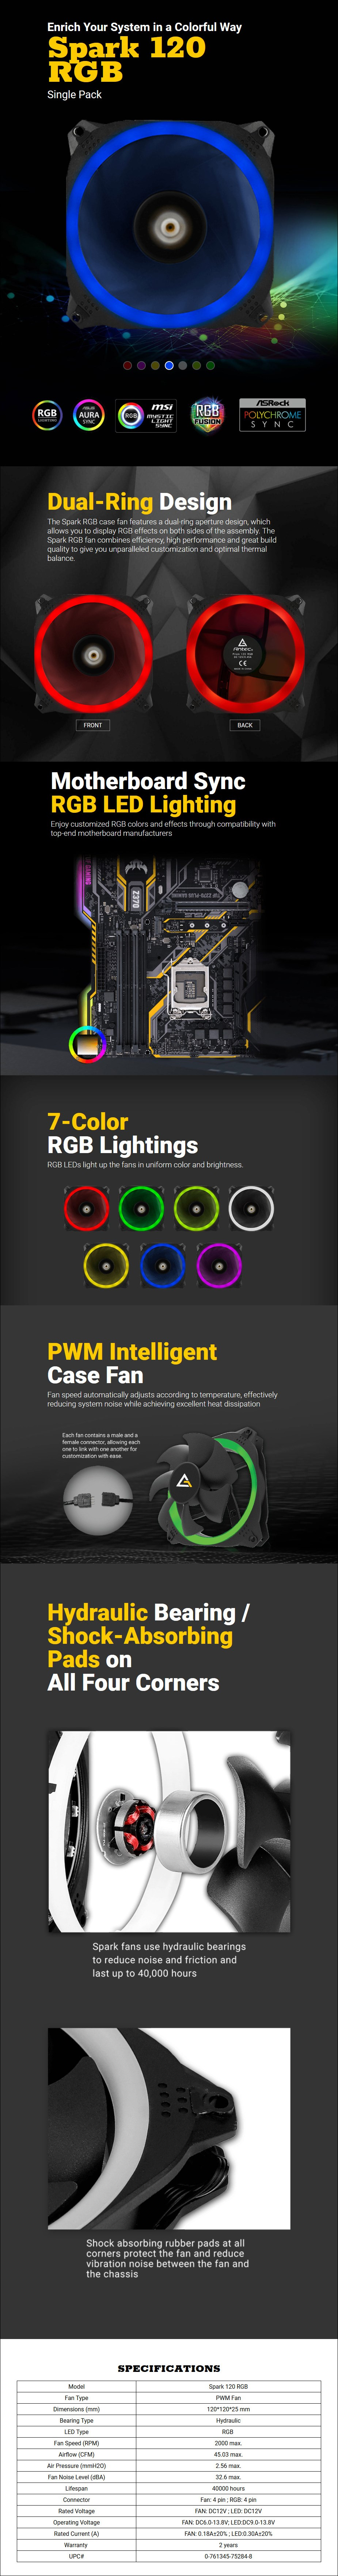 Antec Spark 120 RGB PWM 120mm Case Fan - Desktop Overview 1